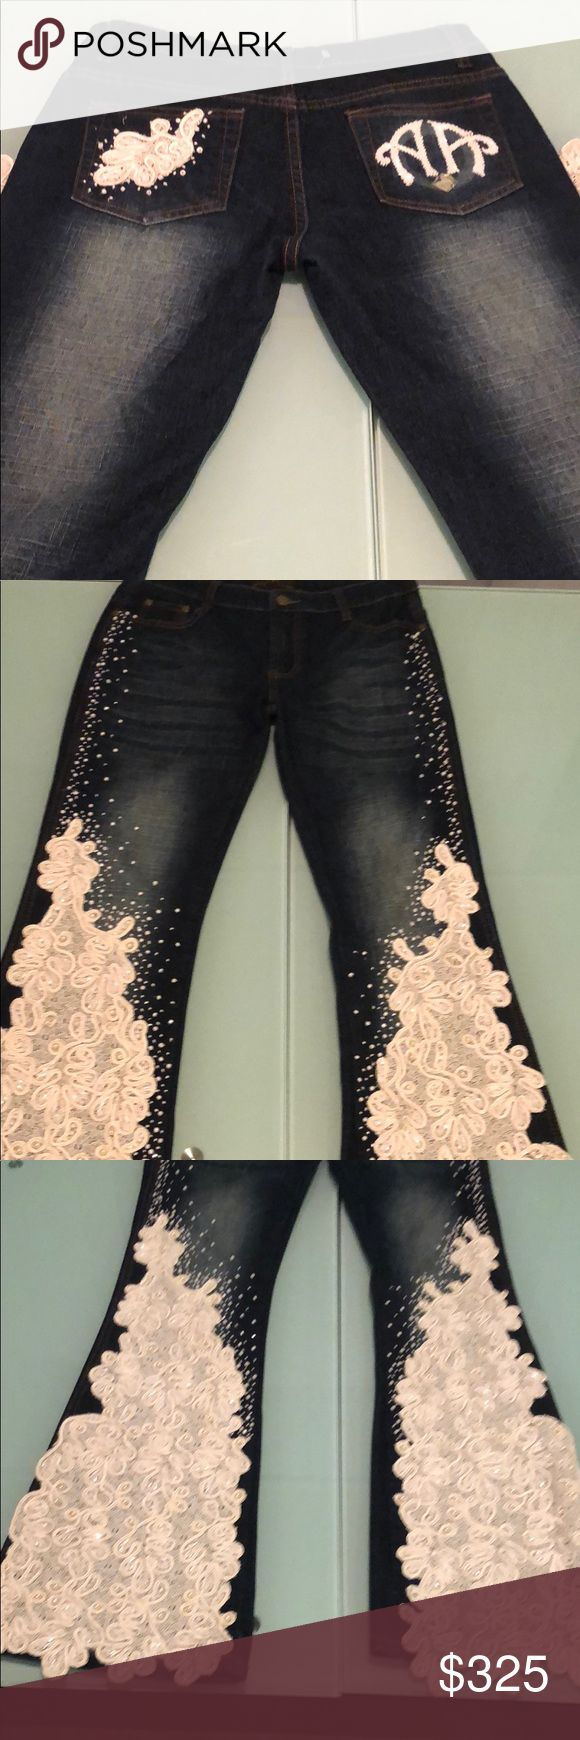 Brand New Amanda ADAMS embroidered bootleg jeans✨✨ ✨Flawless never worn ✨Beautiful Embroidered design  ✨Pearl and Sequin accents Amanda Adams Couture Jeans Boot Cut